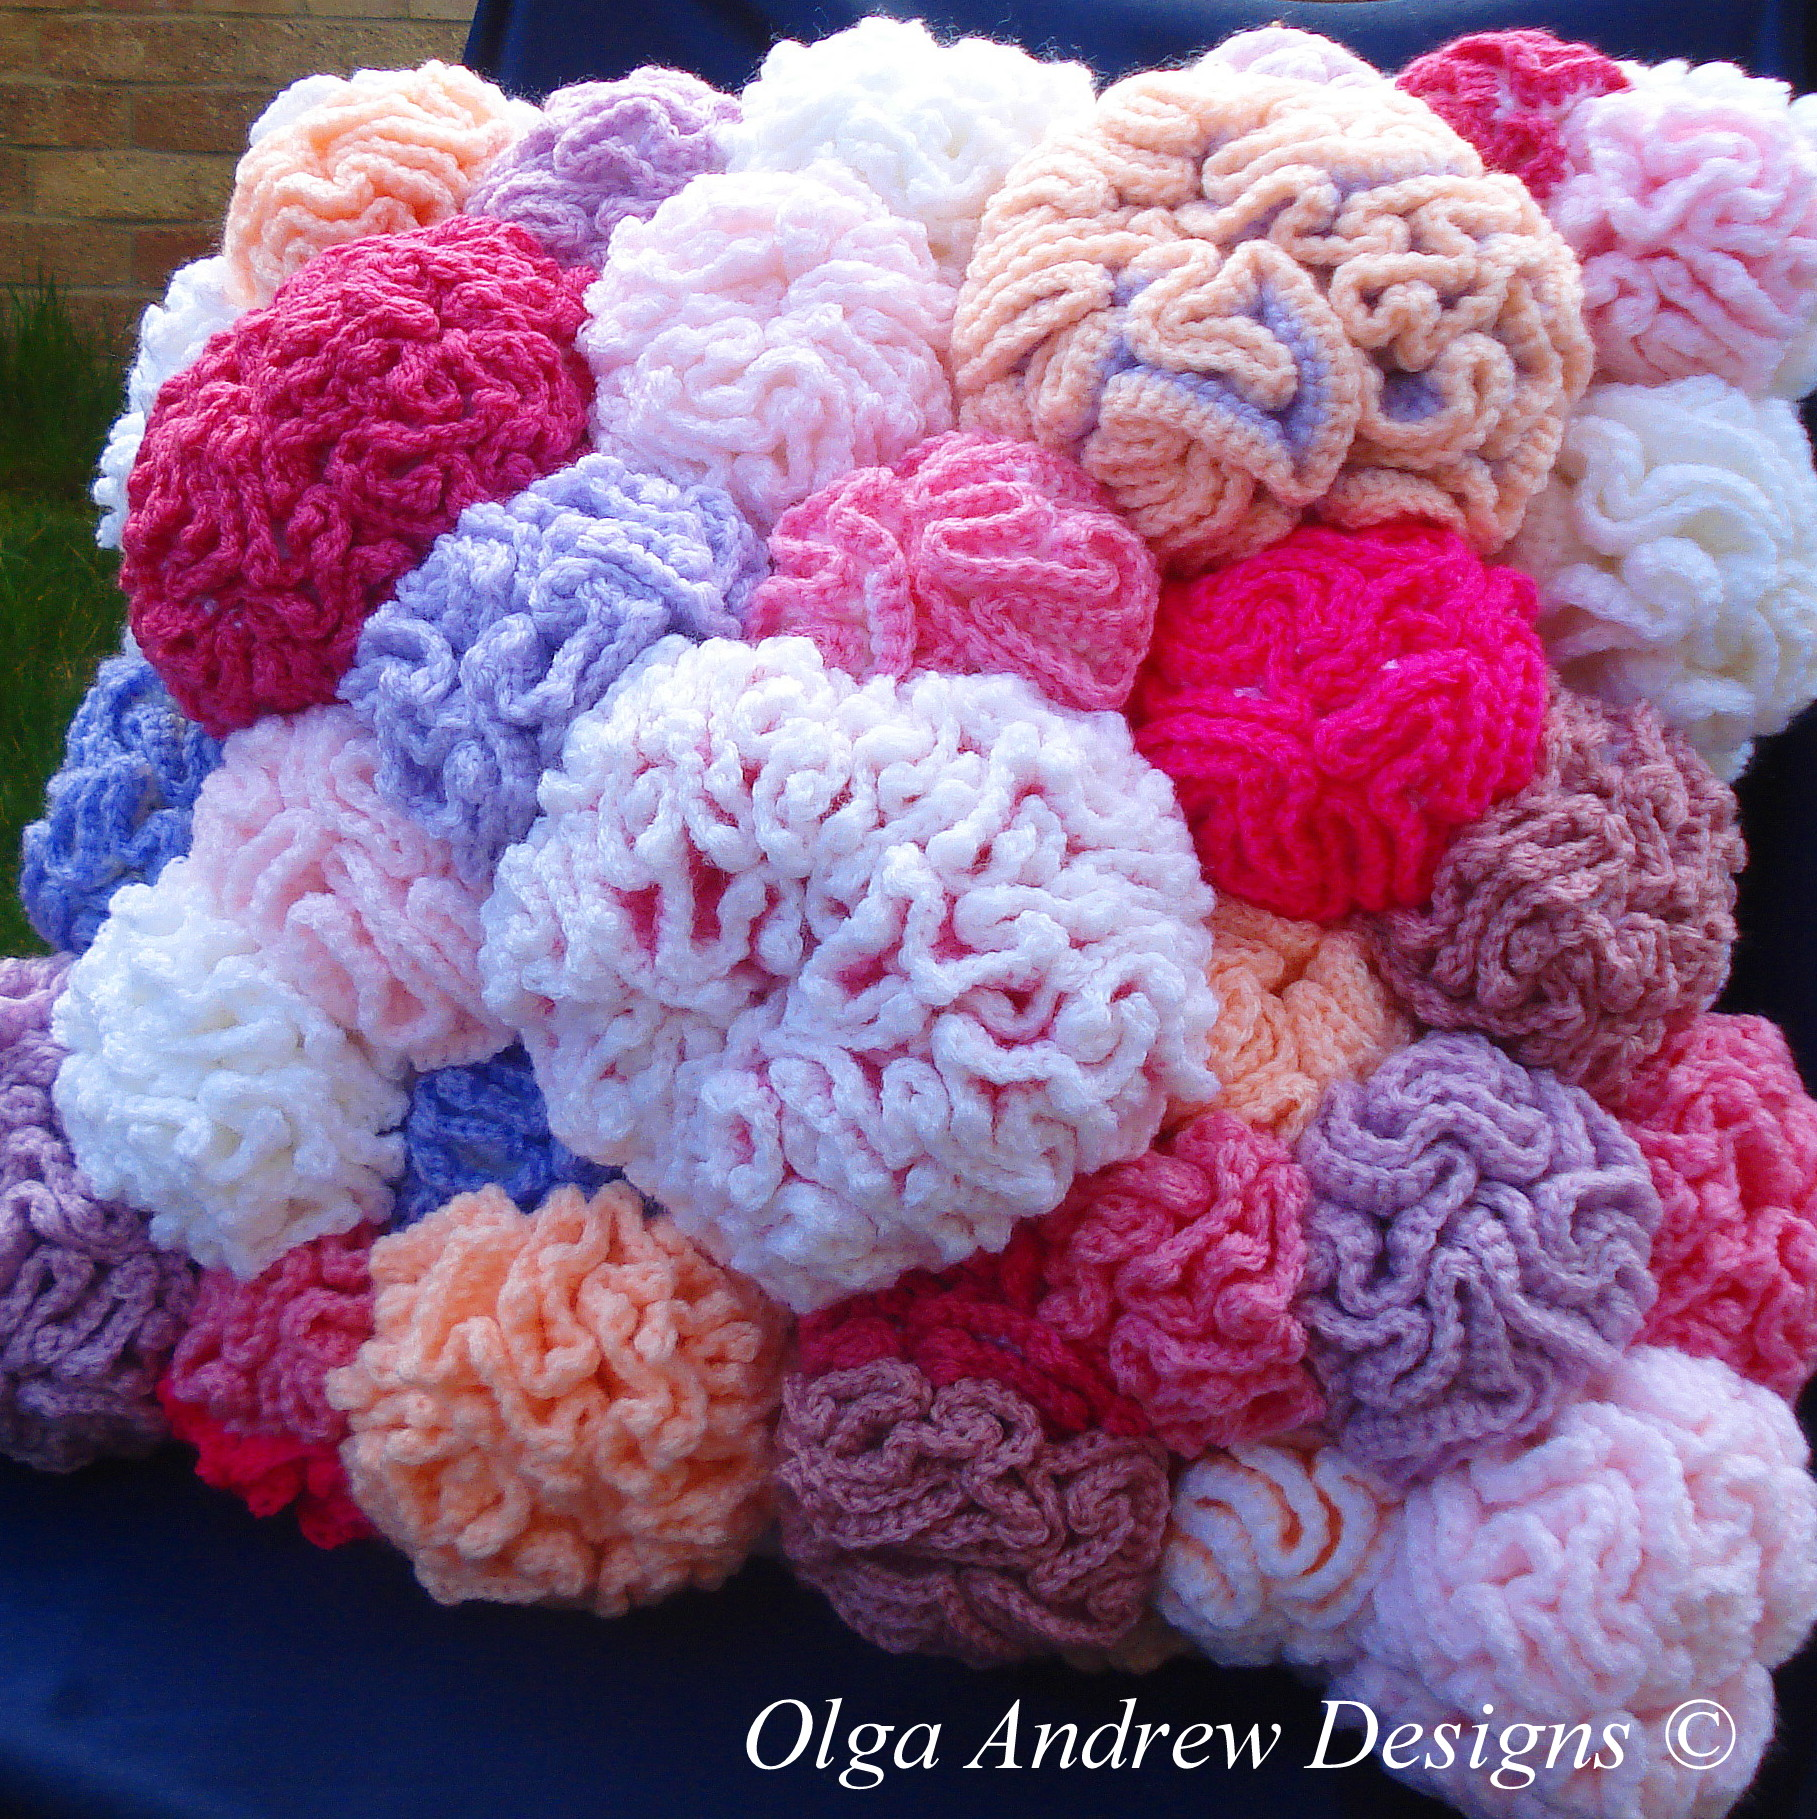 Coral Reef Cushion Knitcrochet Pattern 035